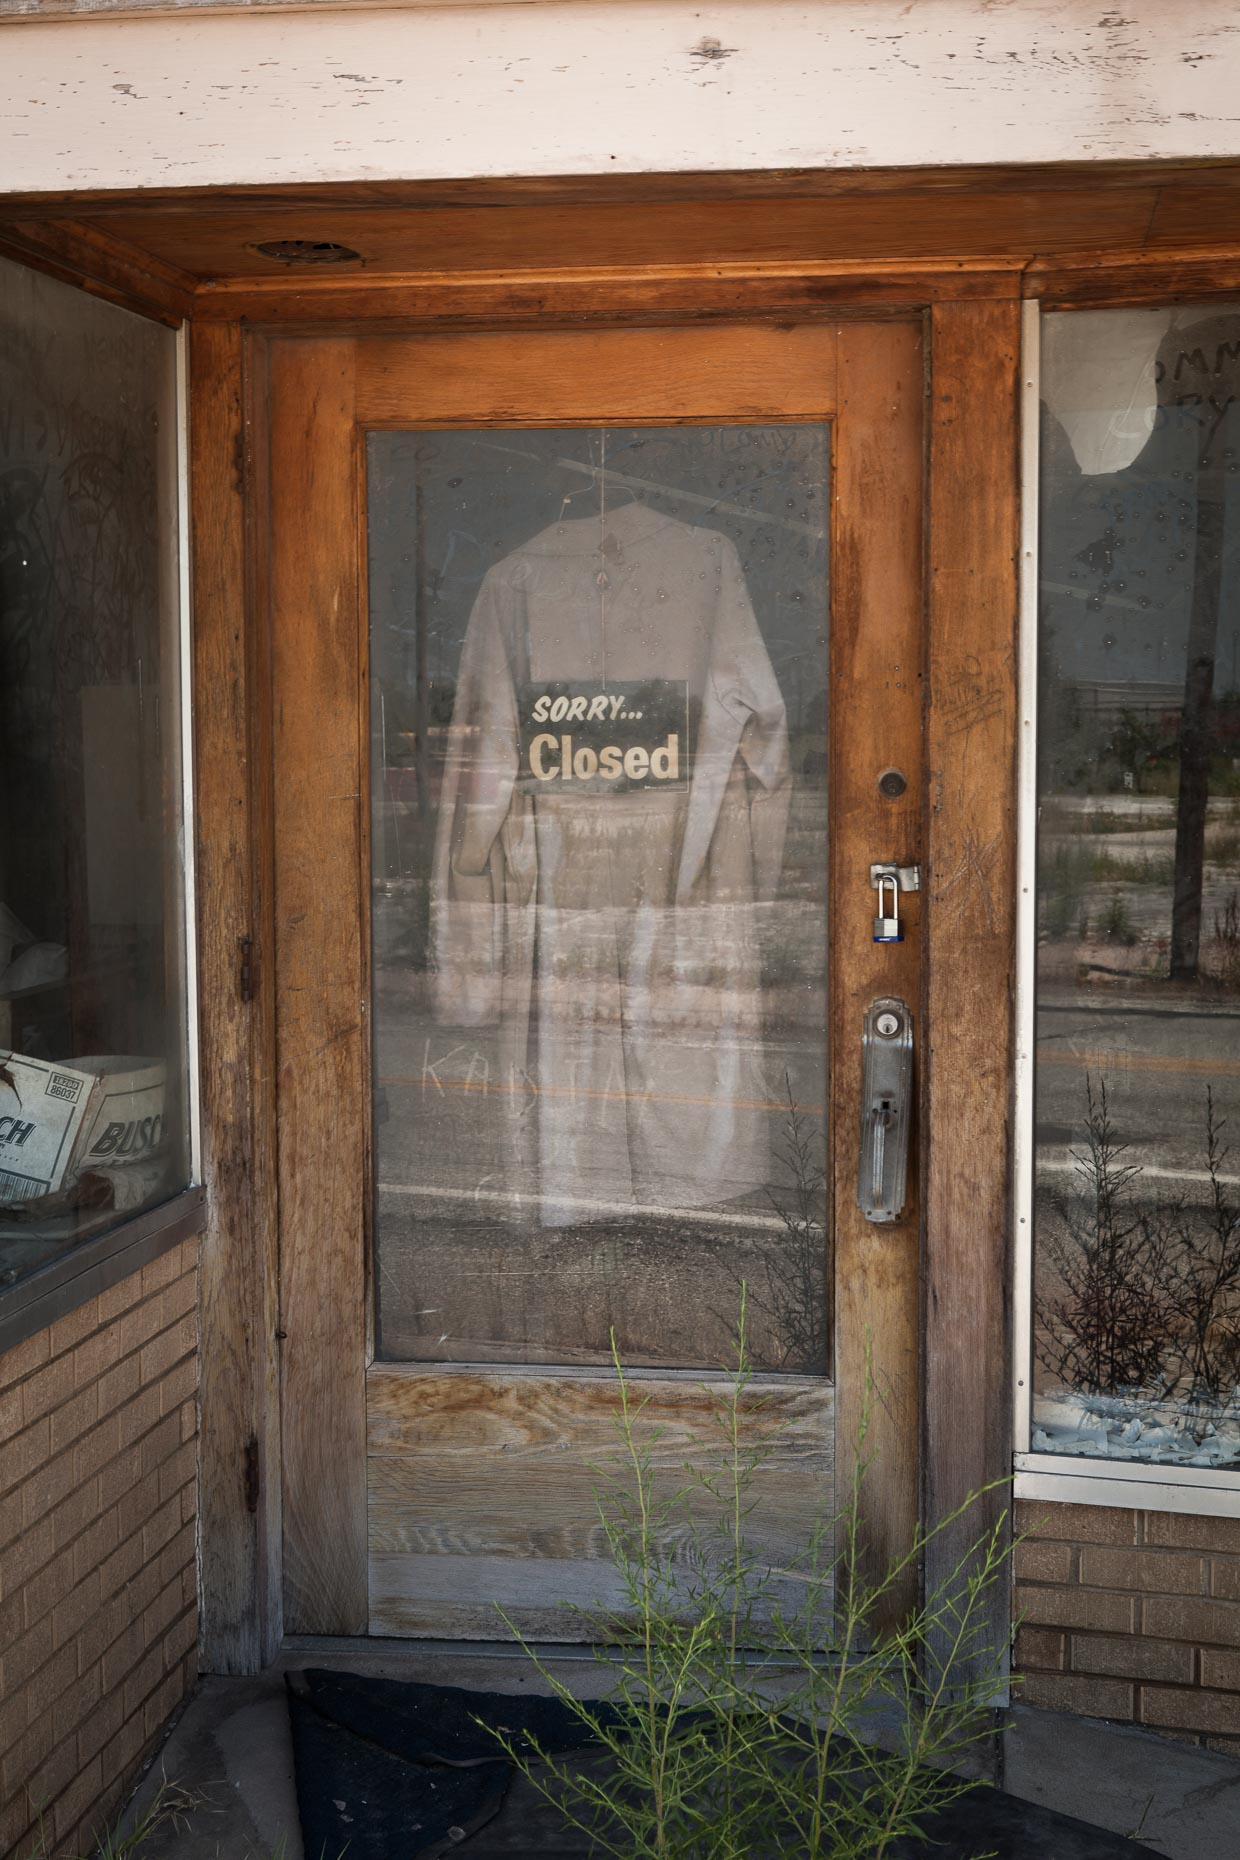 SORRY CLOSED sign in window of store door with clothing hanging by David Zaitz.